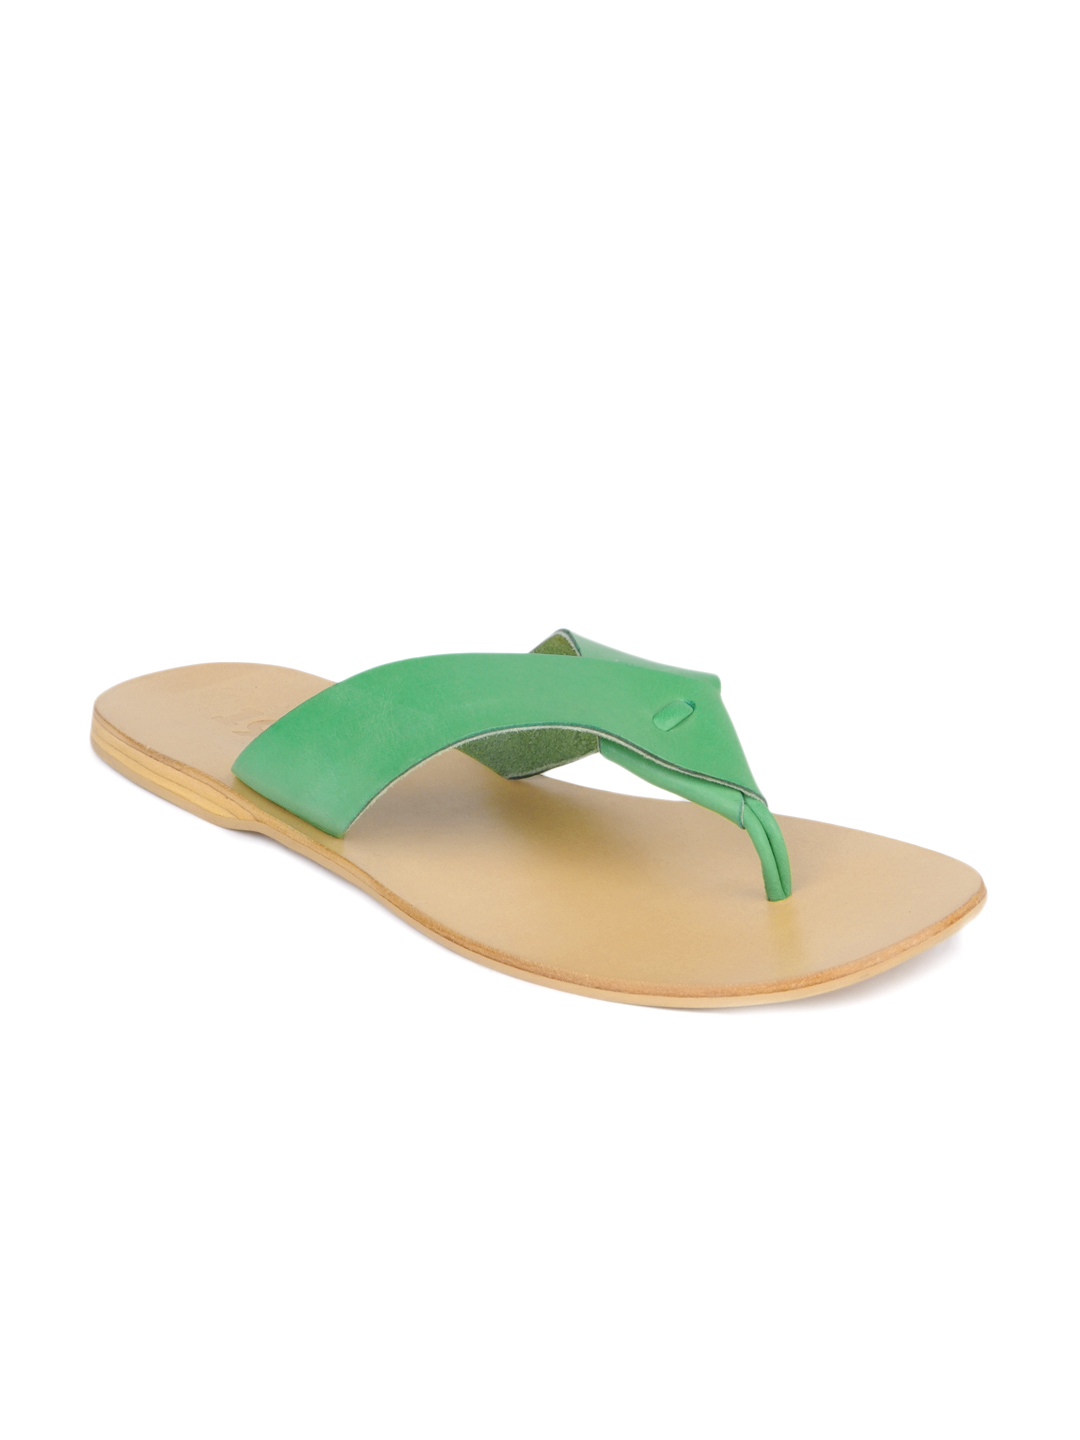 Estd. 1977 Men Beige & Green Sandals